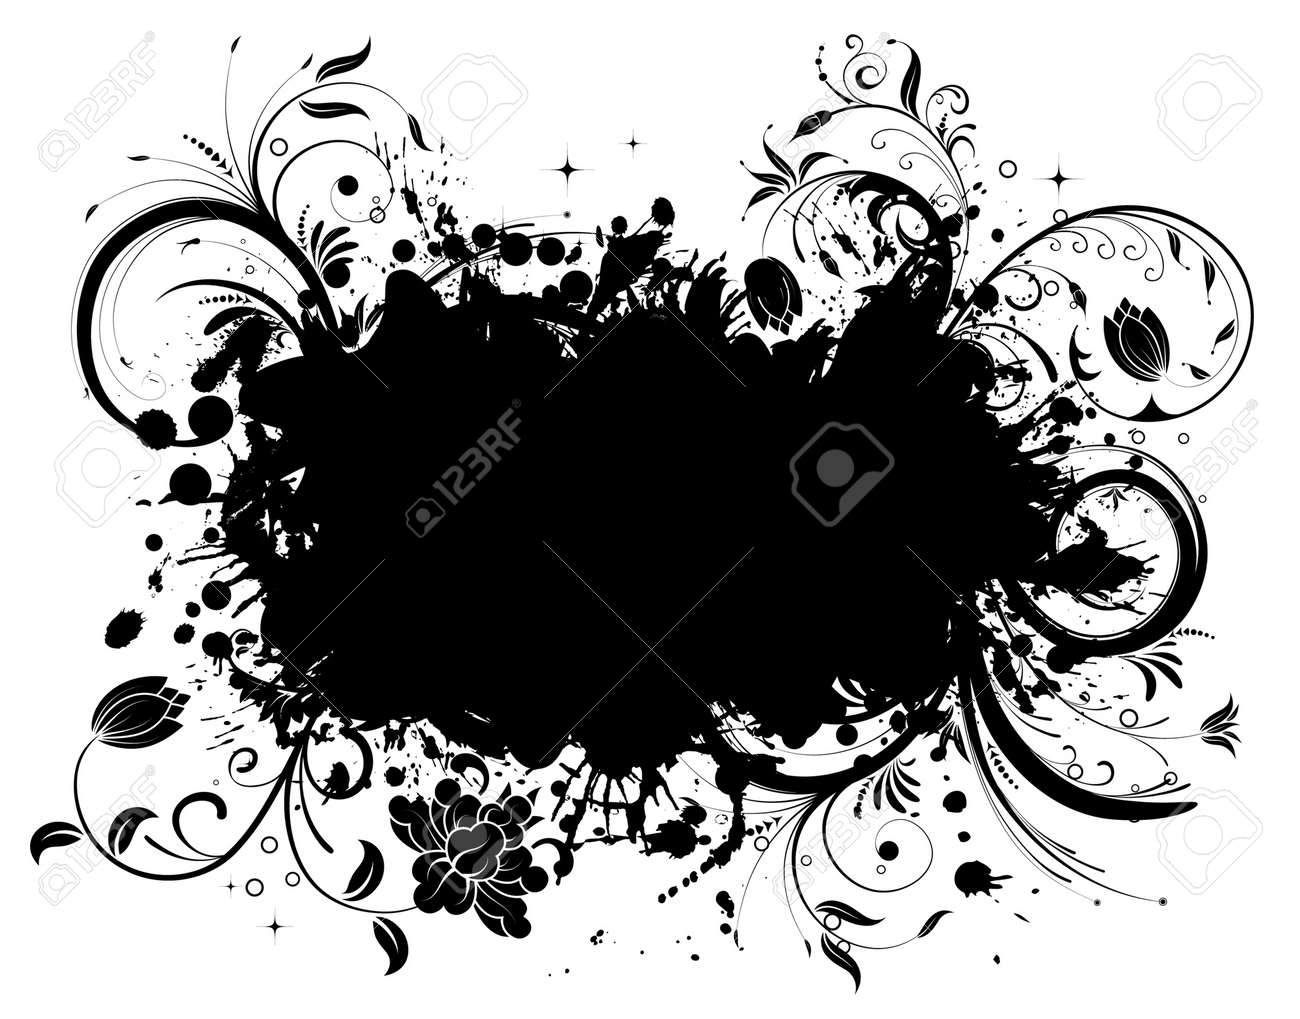 Grunge Floral Frame, element for design, vector illustration Stock Vector - 4450555